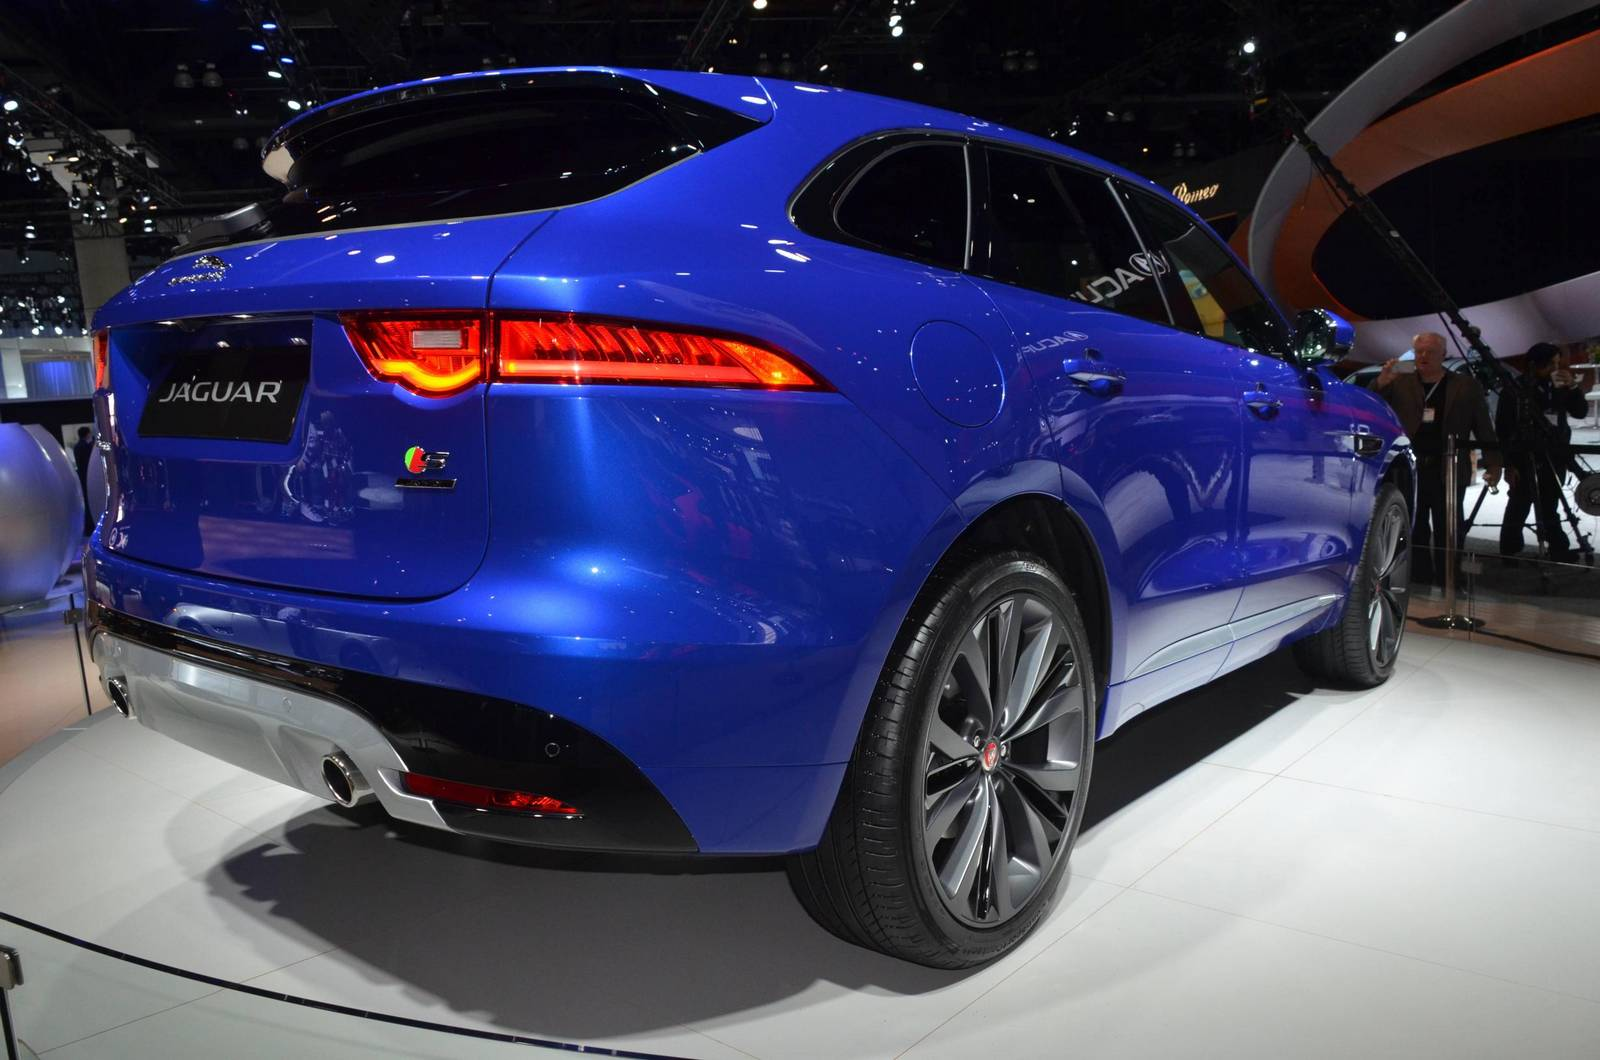 3 Powertrain Models Of Jaguar F-Pace 5